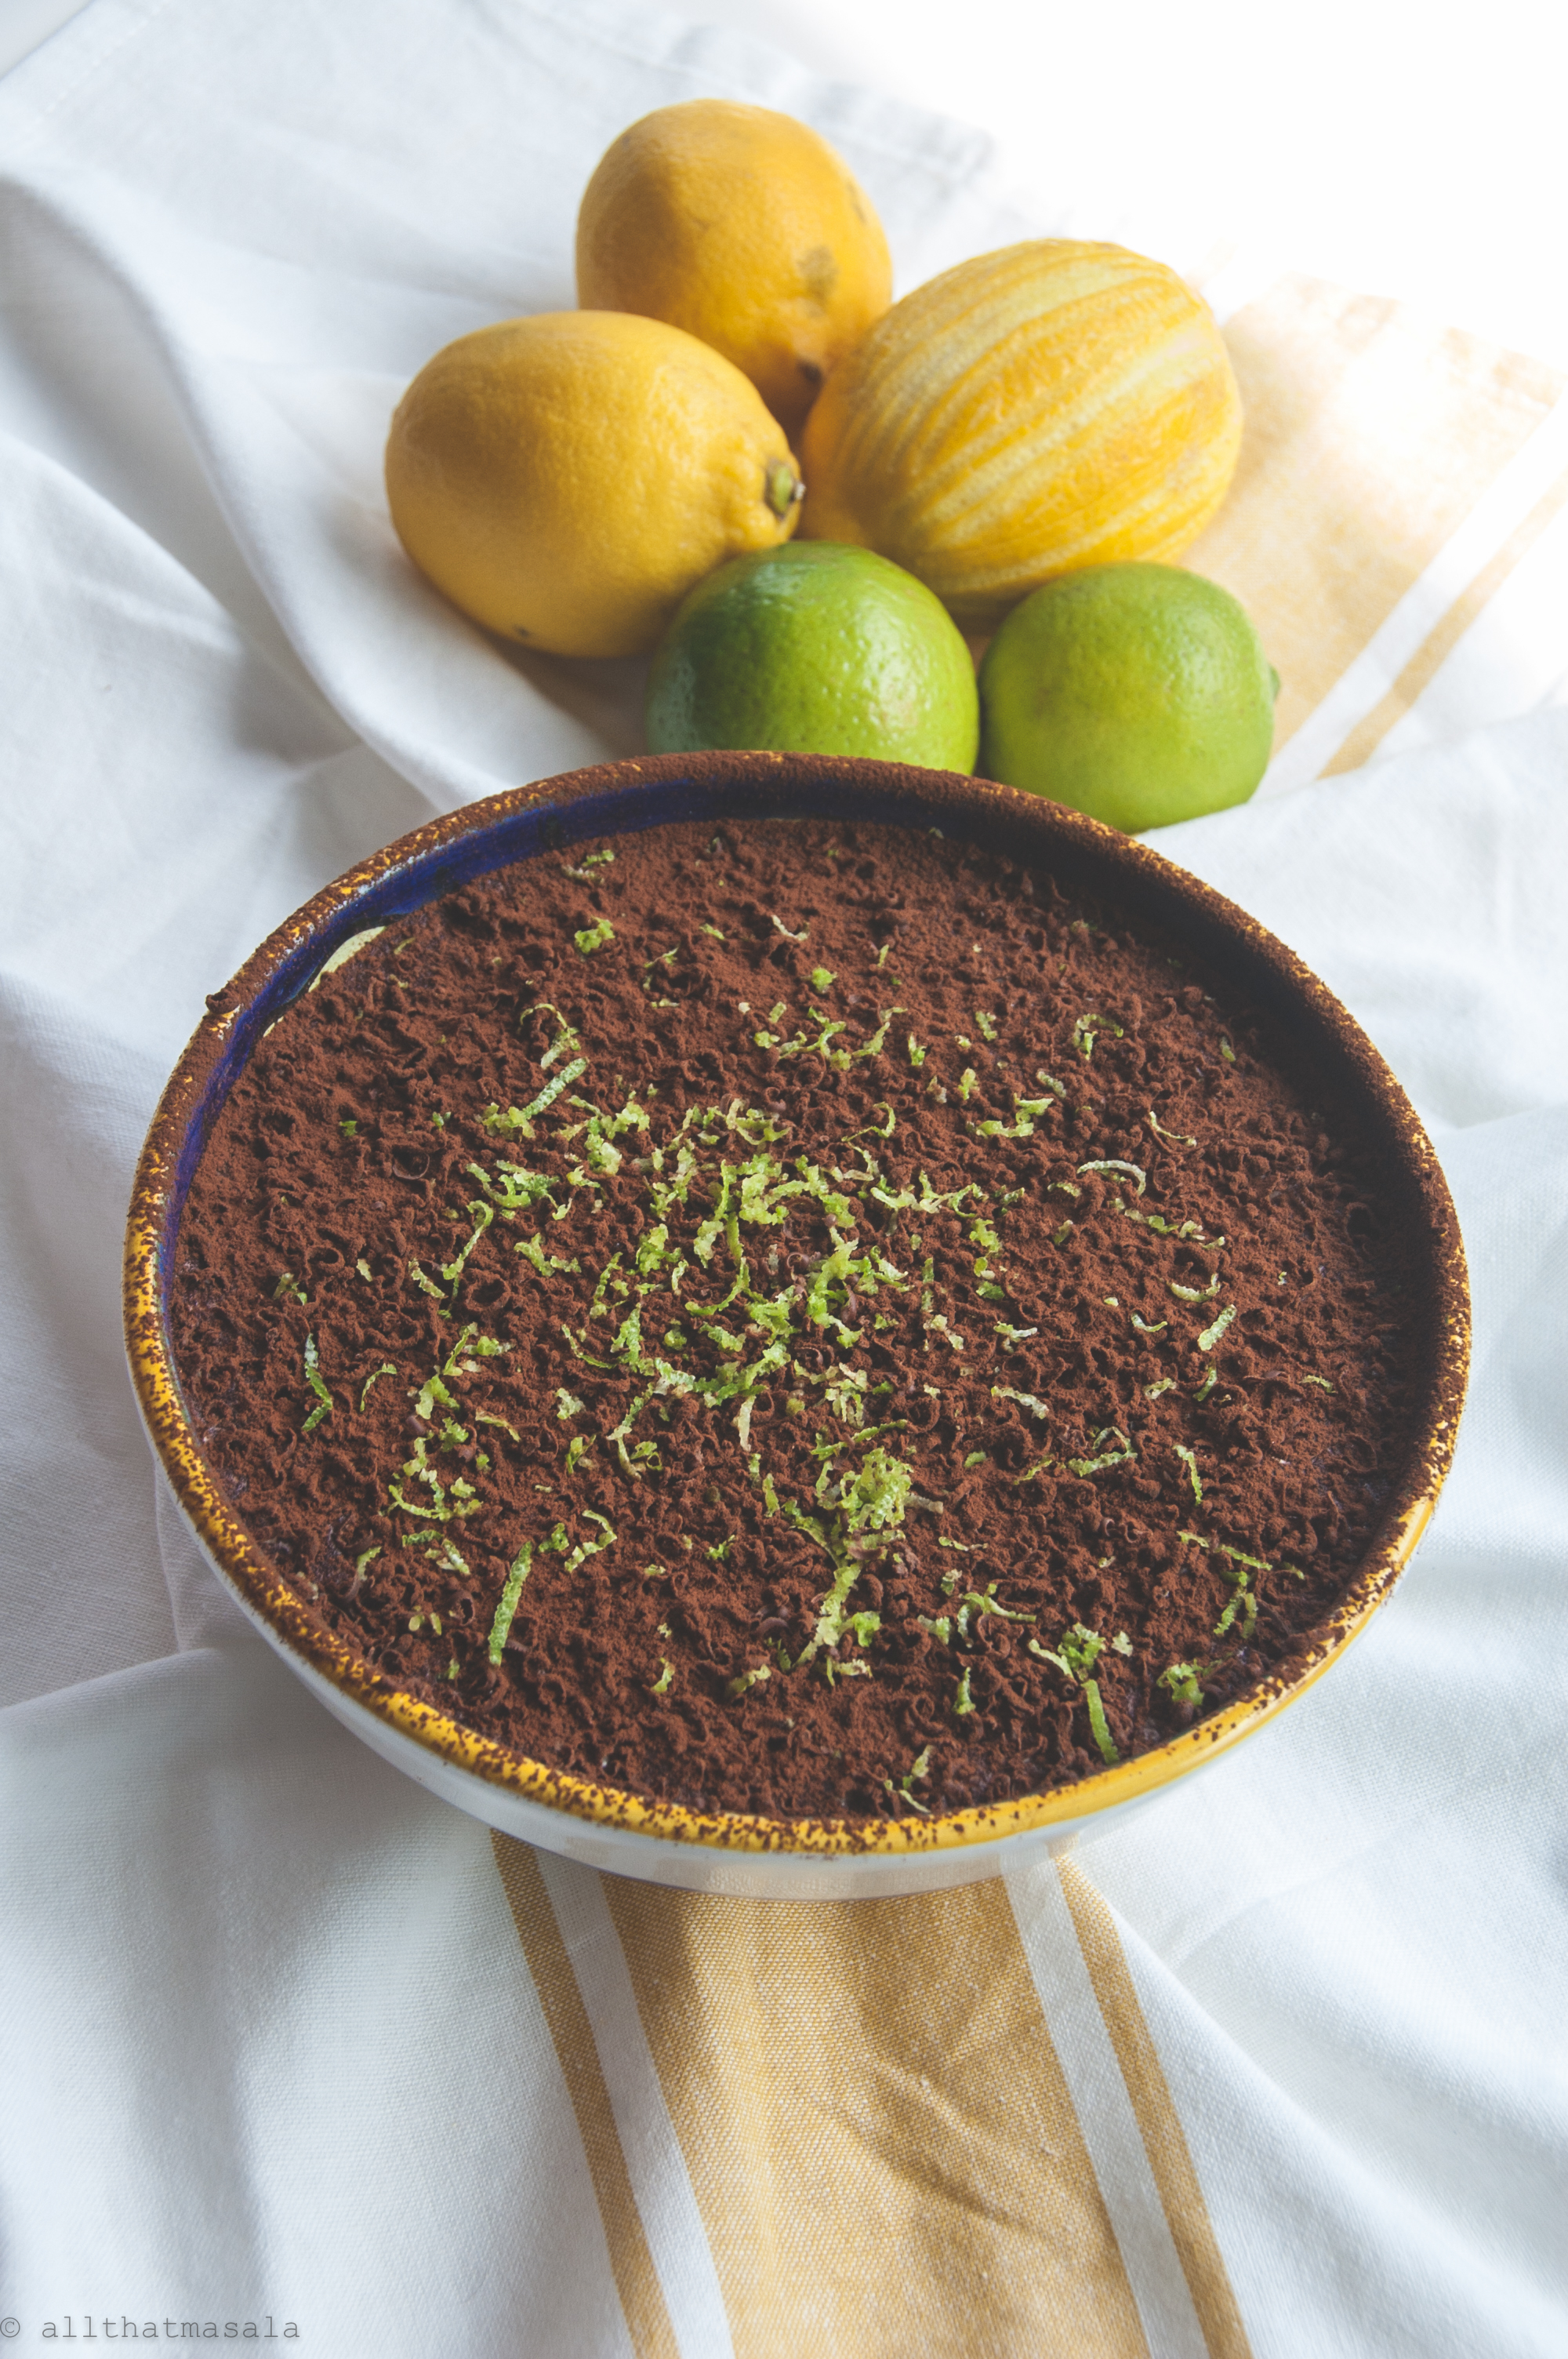 Tiramisu al  limone, is a fresh and fragrant Amalfi twist to a classic Venetian dessert. LAdyfingers dipped in lemony syrup and stacked between creamy layers of mascarpone, this is a quick and no-bake dessert recipe that takes a few minutes to whisk together and 3 hours to set.